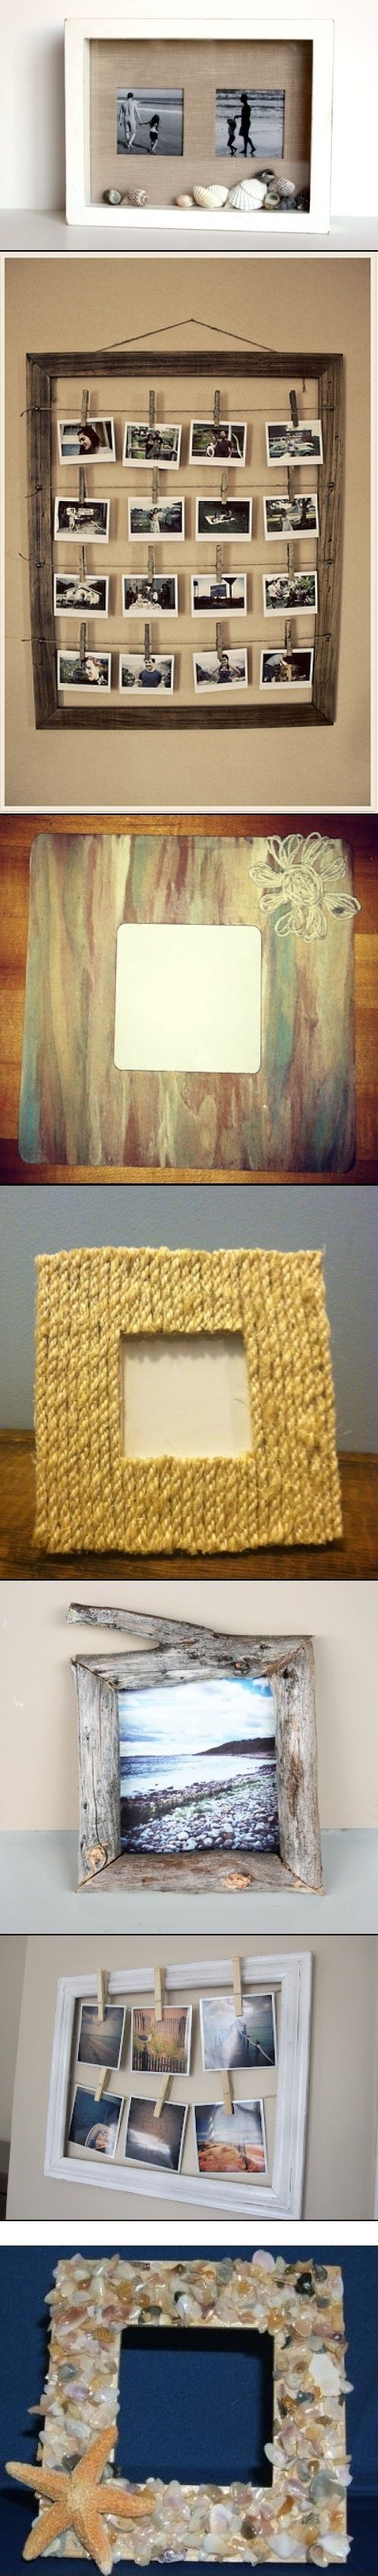 DIY Photo Frame Ideas Buy archies photo frames : http://www.archiesonline.com/shop/gifts-for-him/gifting/photoframes #archies #archiesonline